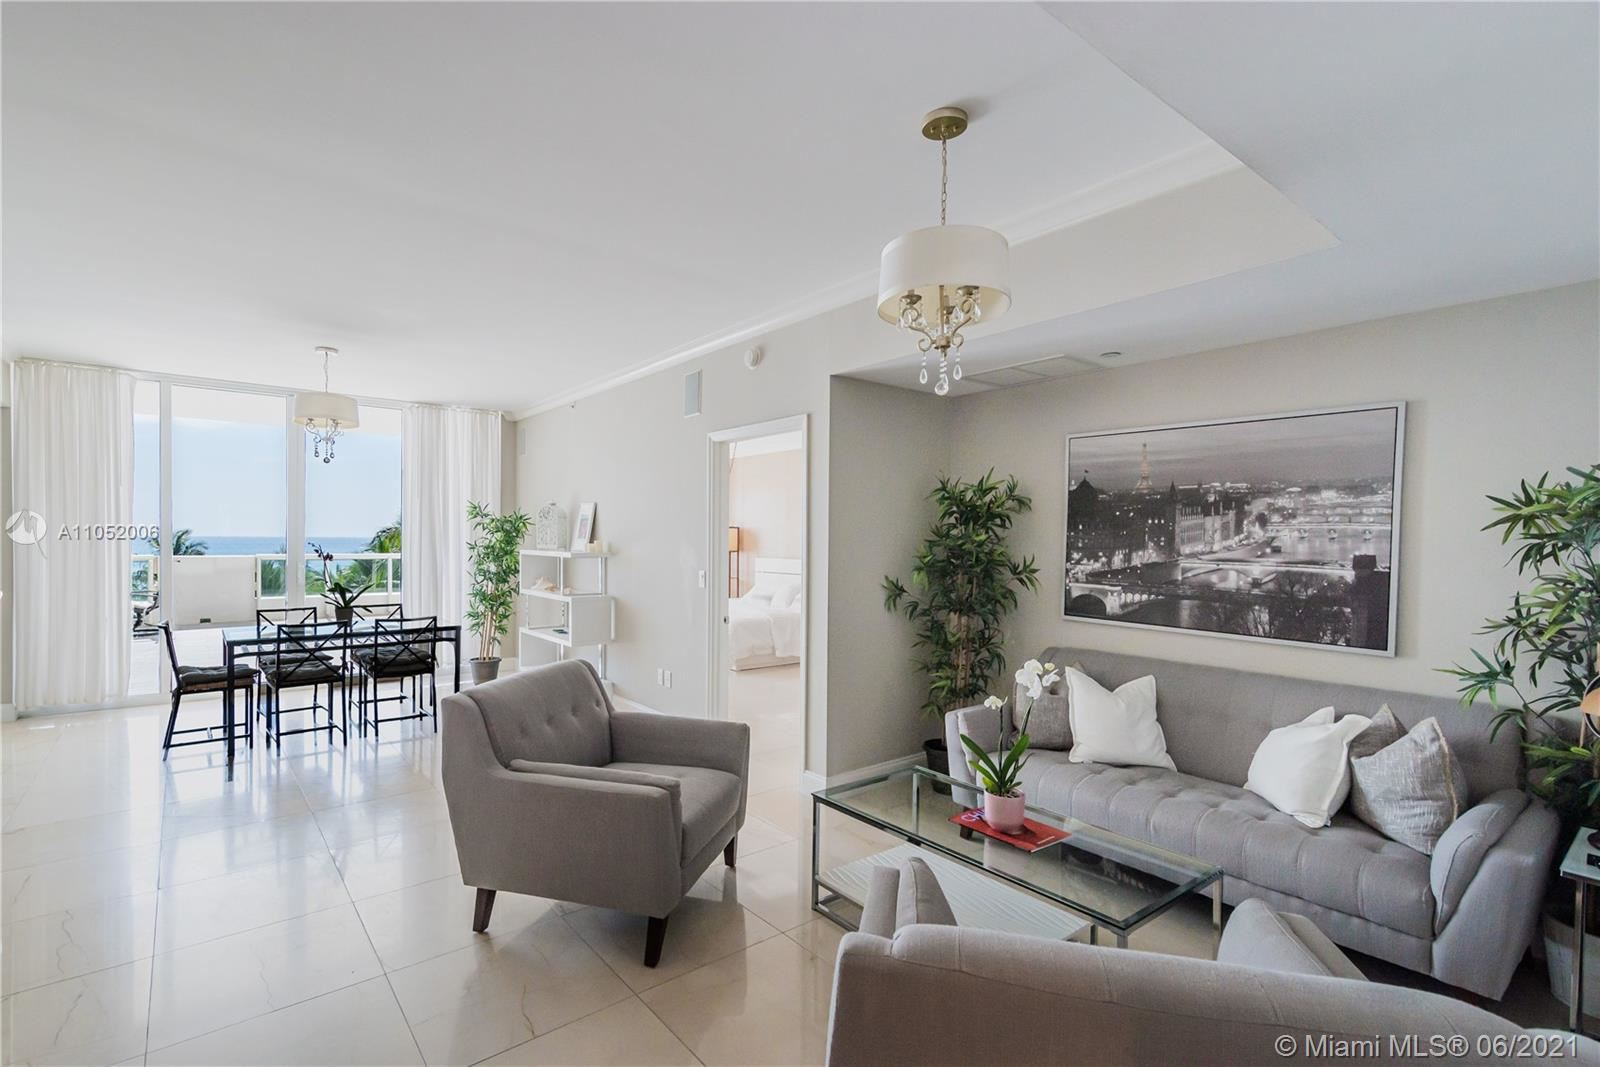 17875 Collins Ave #502, Sunny Isles, FL 33160 - #: A11052006